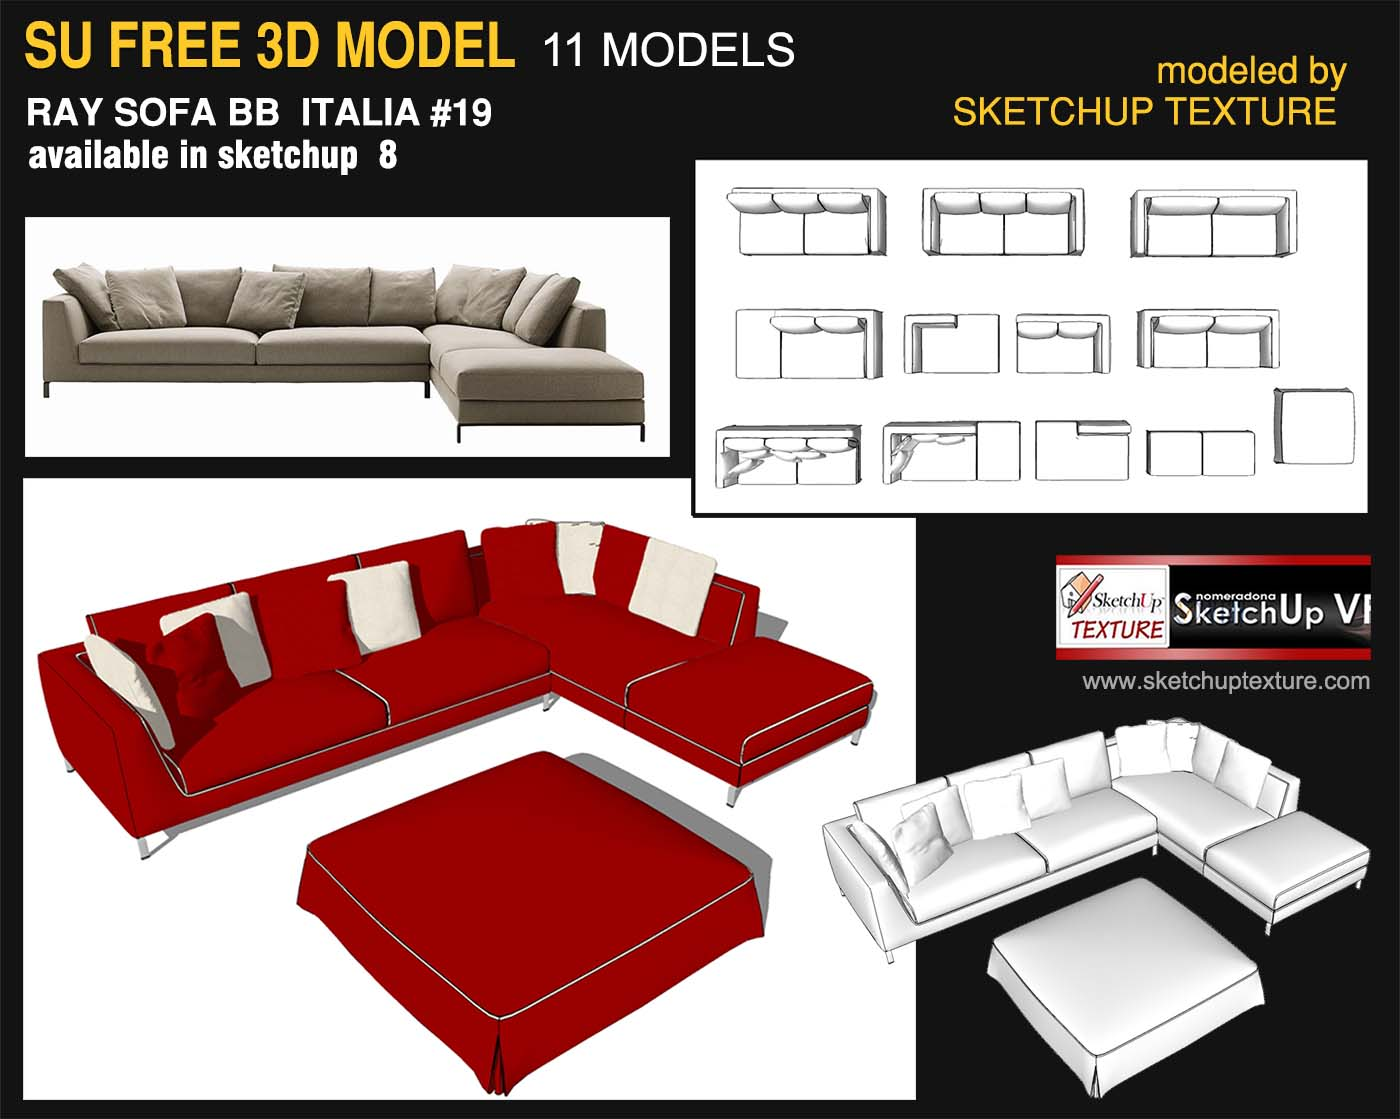 免费Sketchup 3D模型Ray Sofa BB 意大利 通过 skethuptexture.com